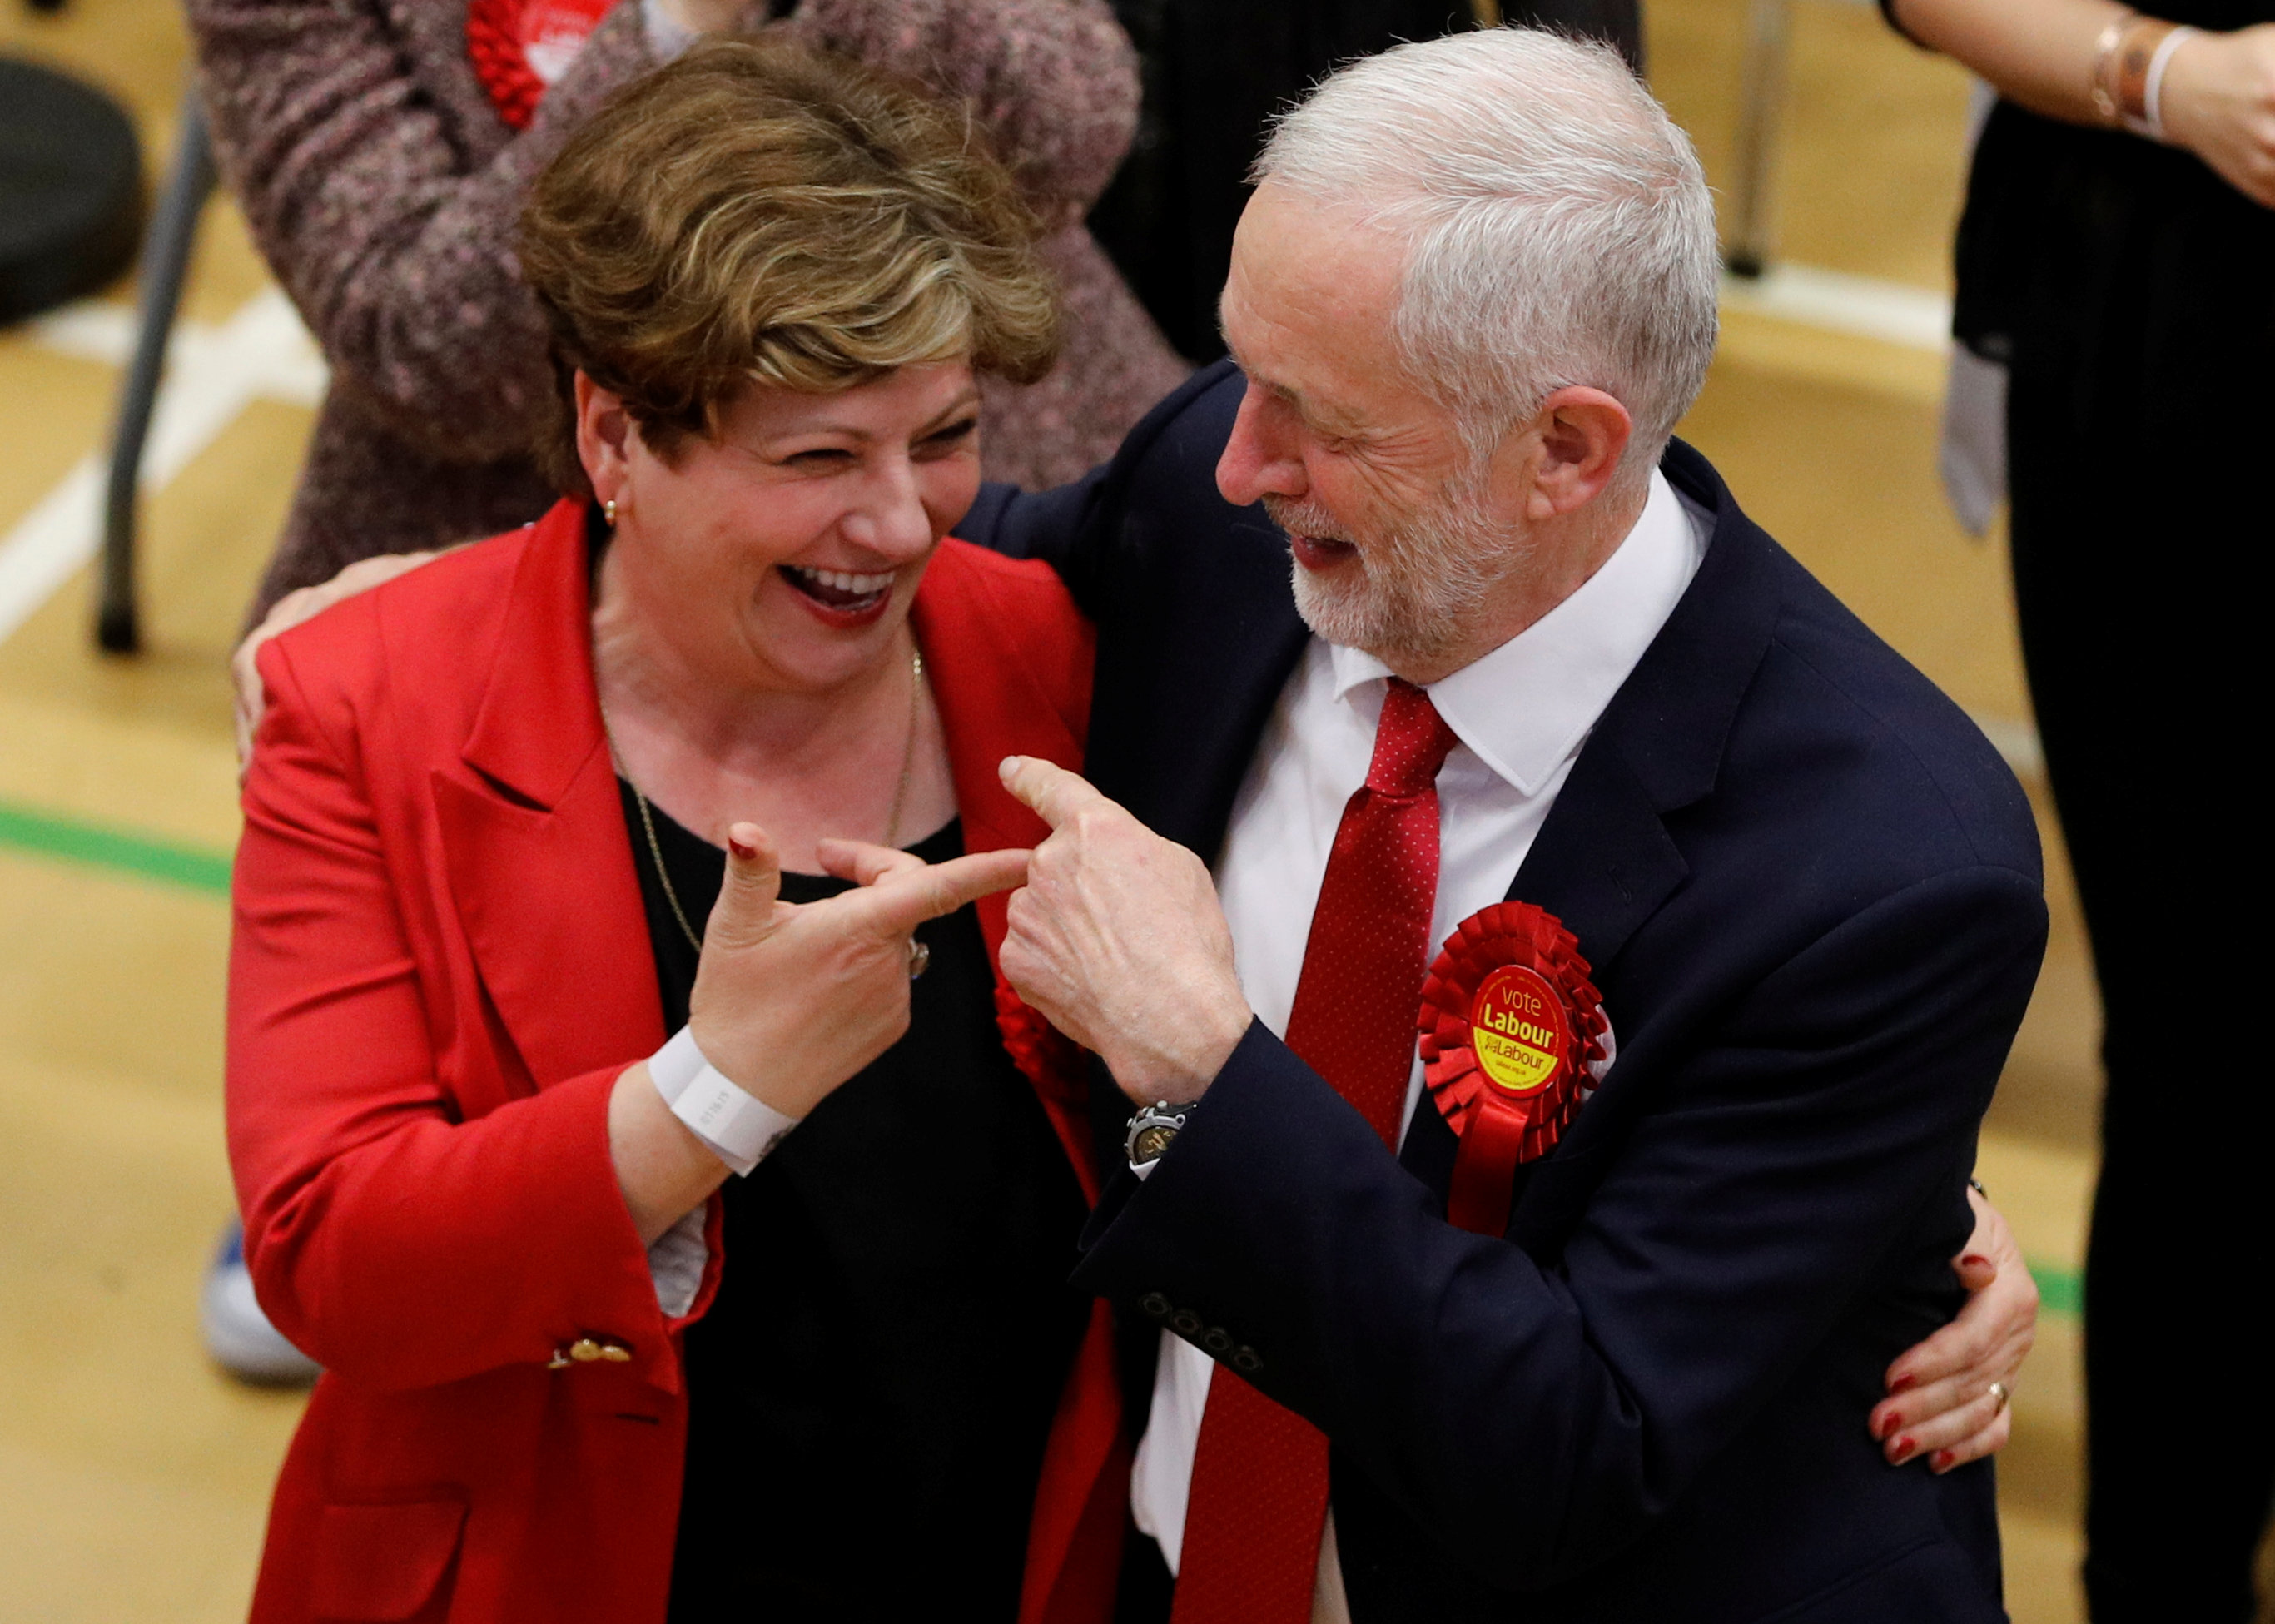 Jeremy Corbyn, leader of Britain's opposition Labour Party, and Labour Party candidate Emily Thornberry gesture at a counting centre for Britain's general election in London on June 9, 2017. (REUTERS/Darren Staples)